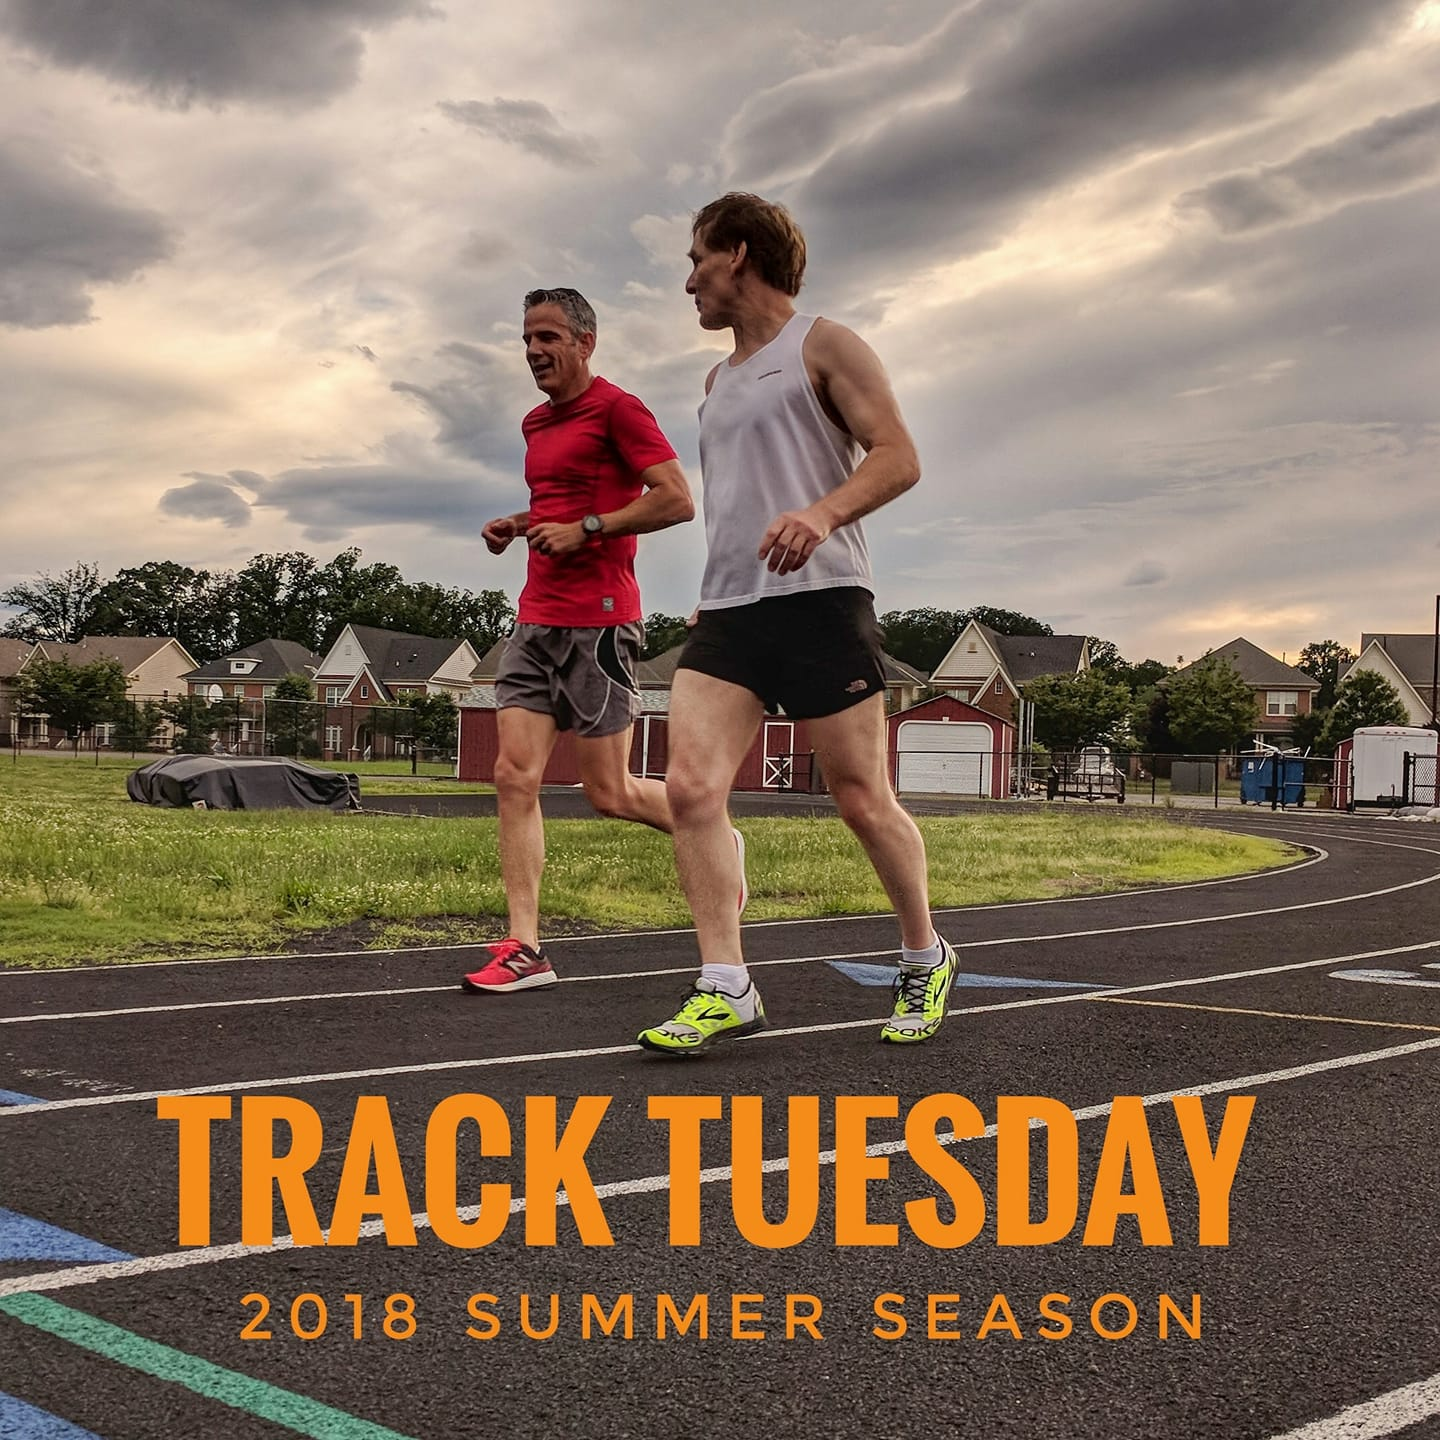 Track Tuesday